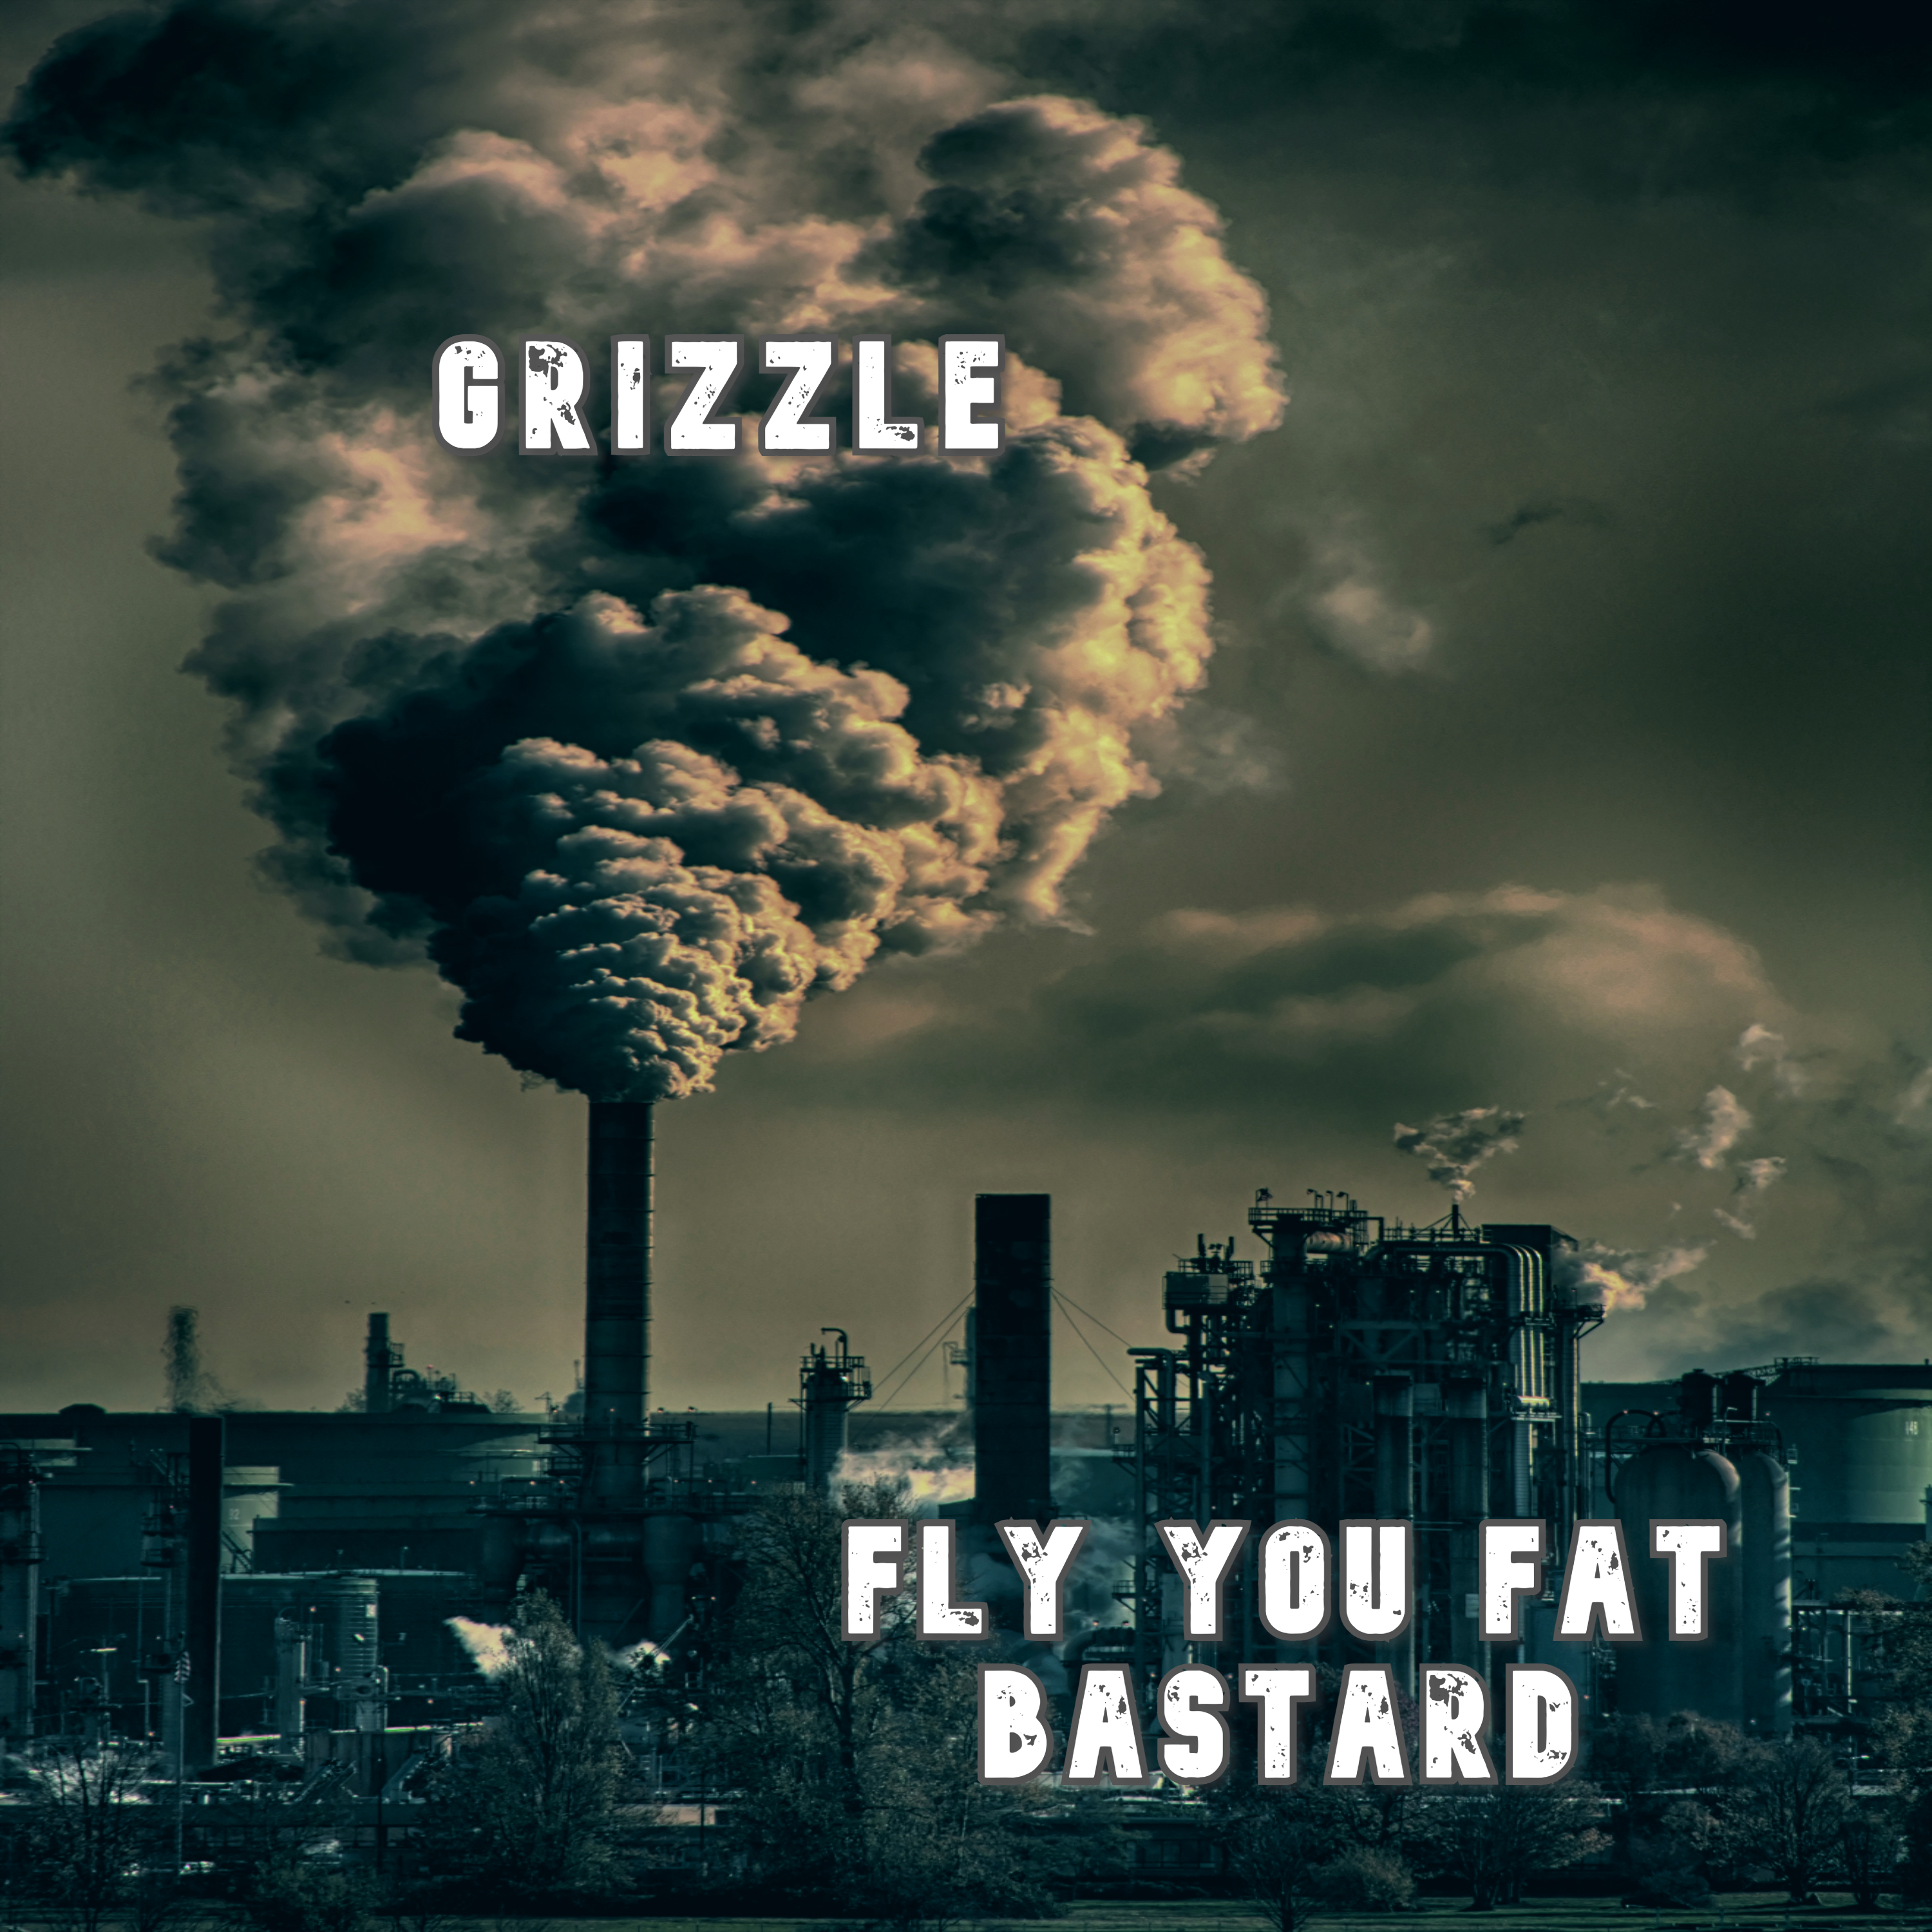 Grizzle Fly You fat Bastard Cover 2021.jpg